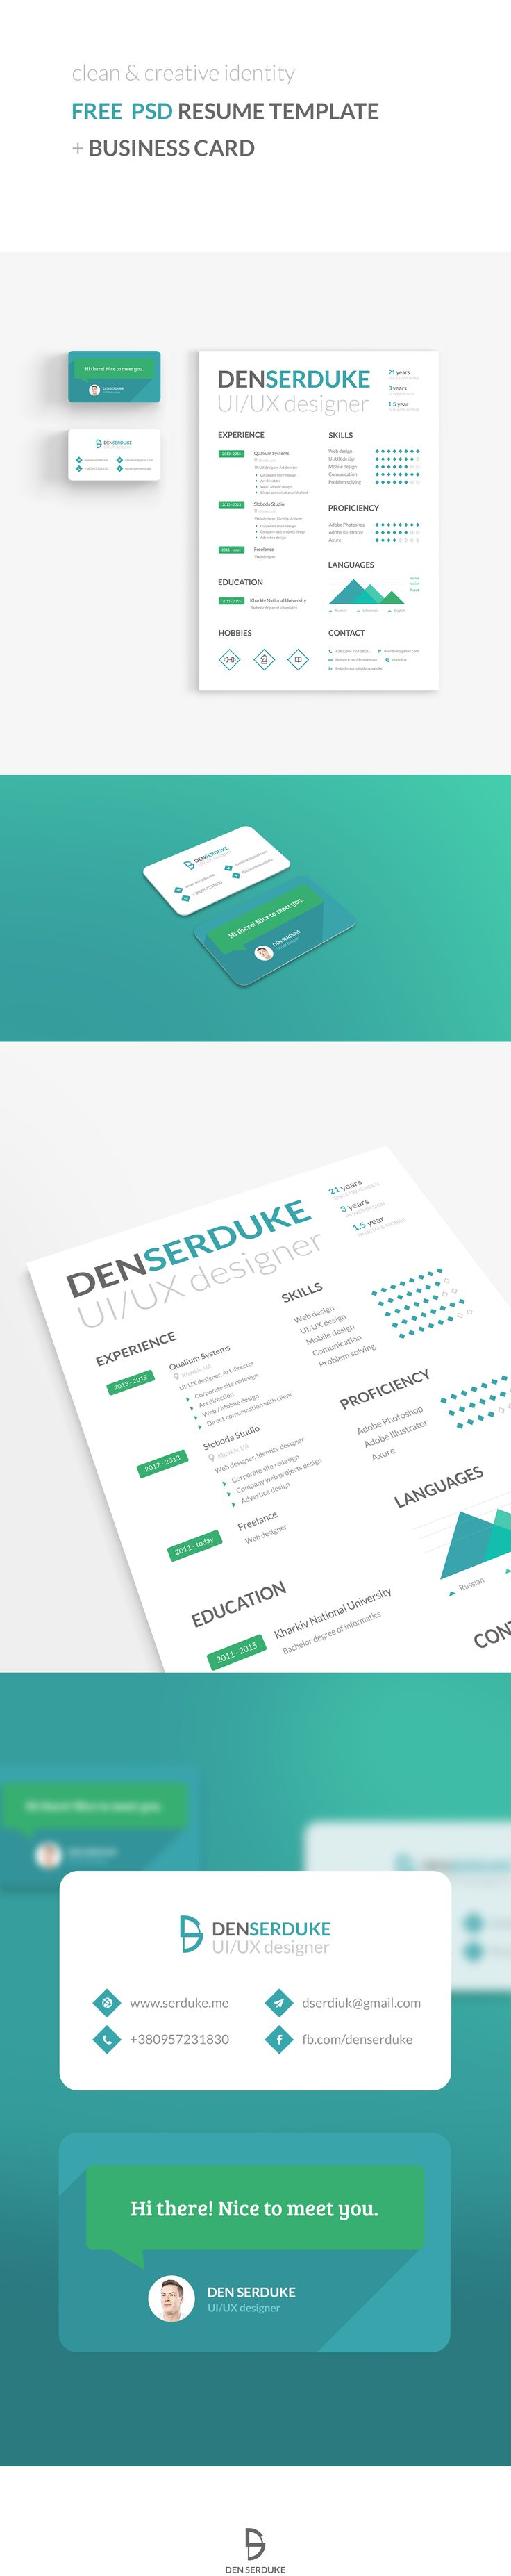 FREE Resume u0026 Business card on Behance